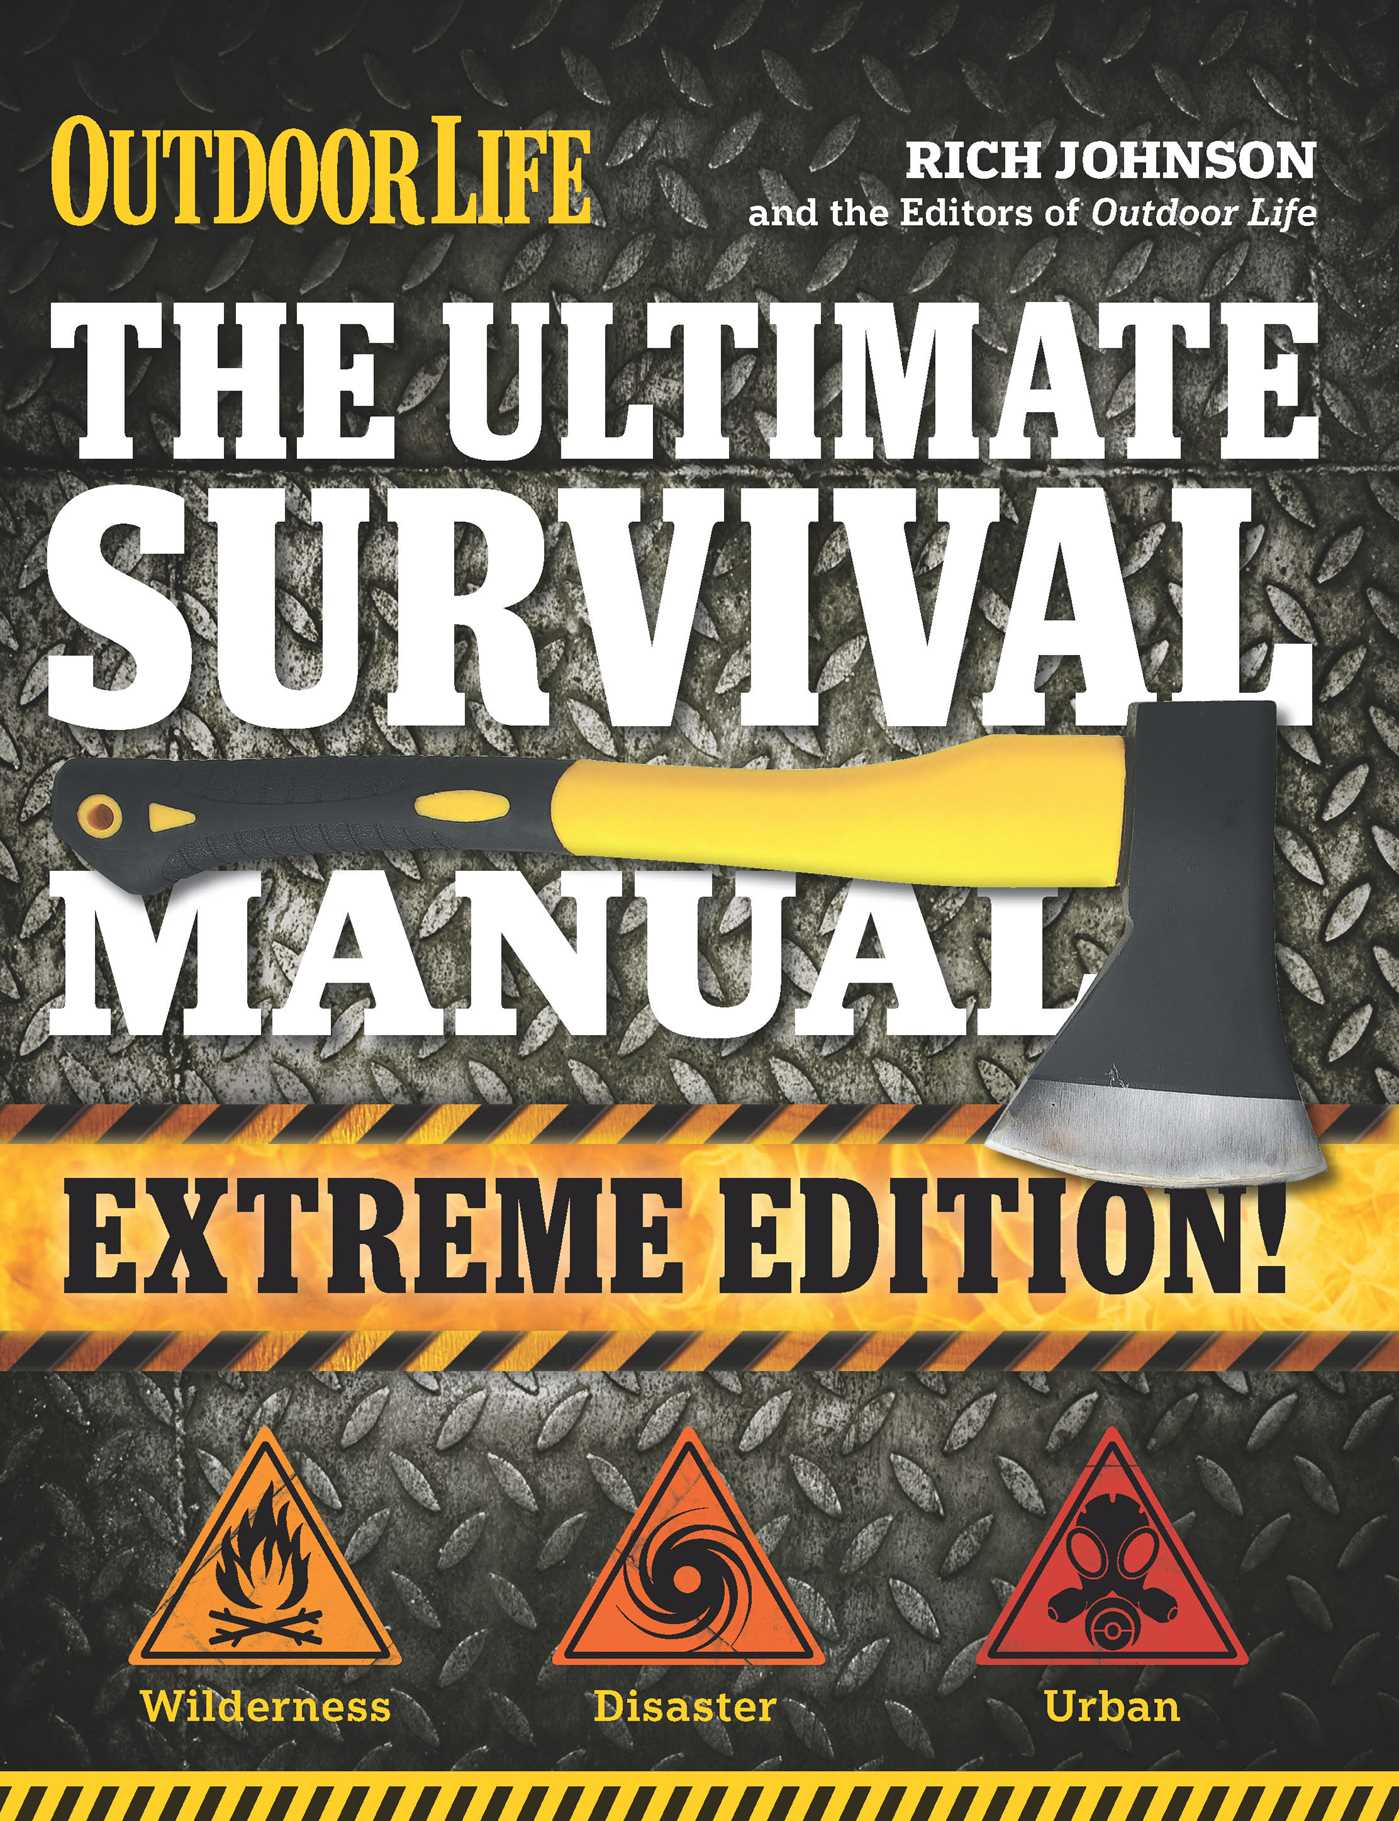 The ultimate survival manual outdoor life extreme edition 9781681880433 hr